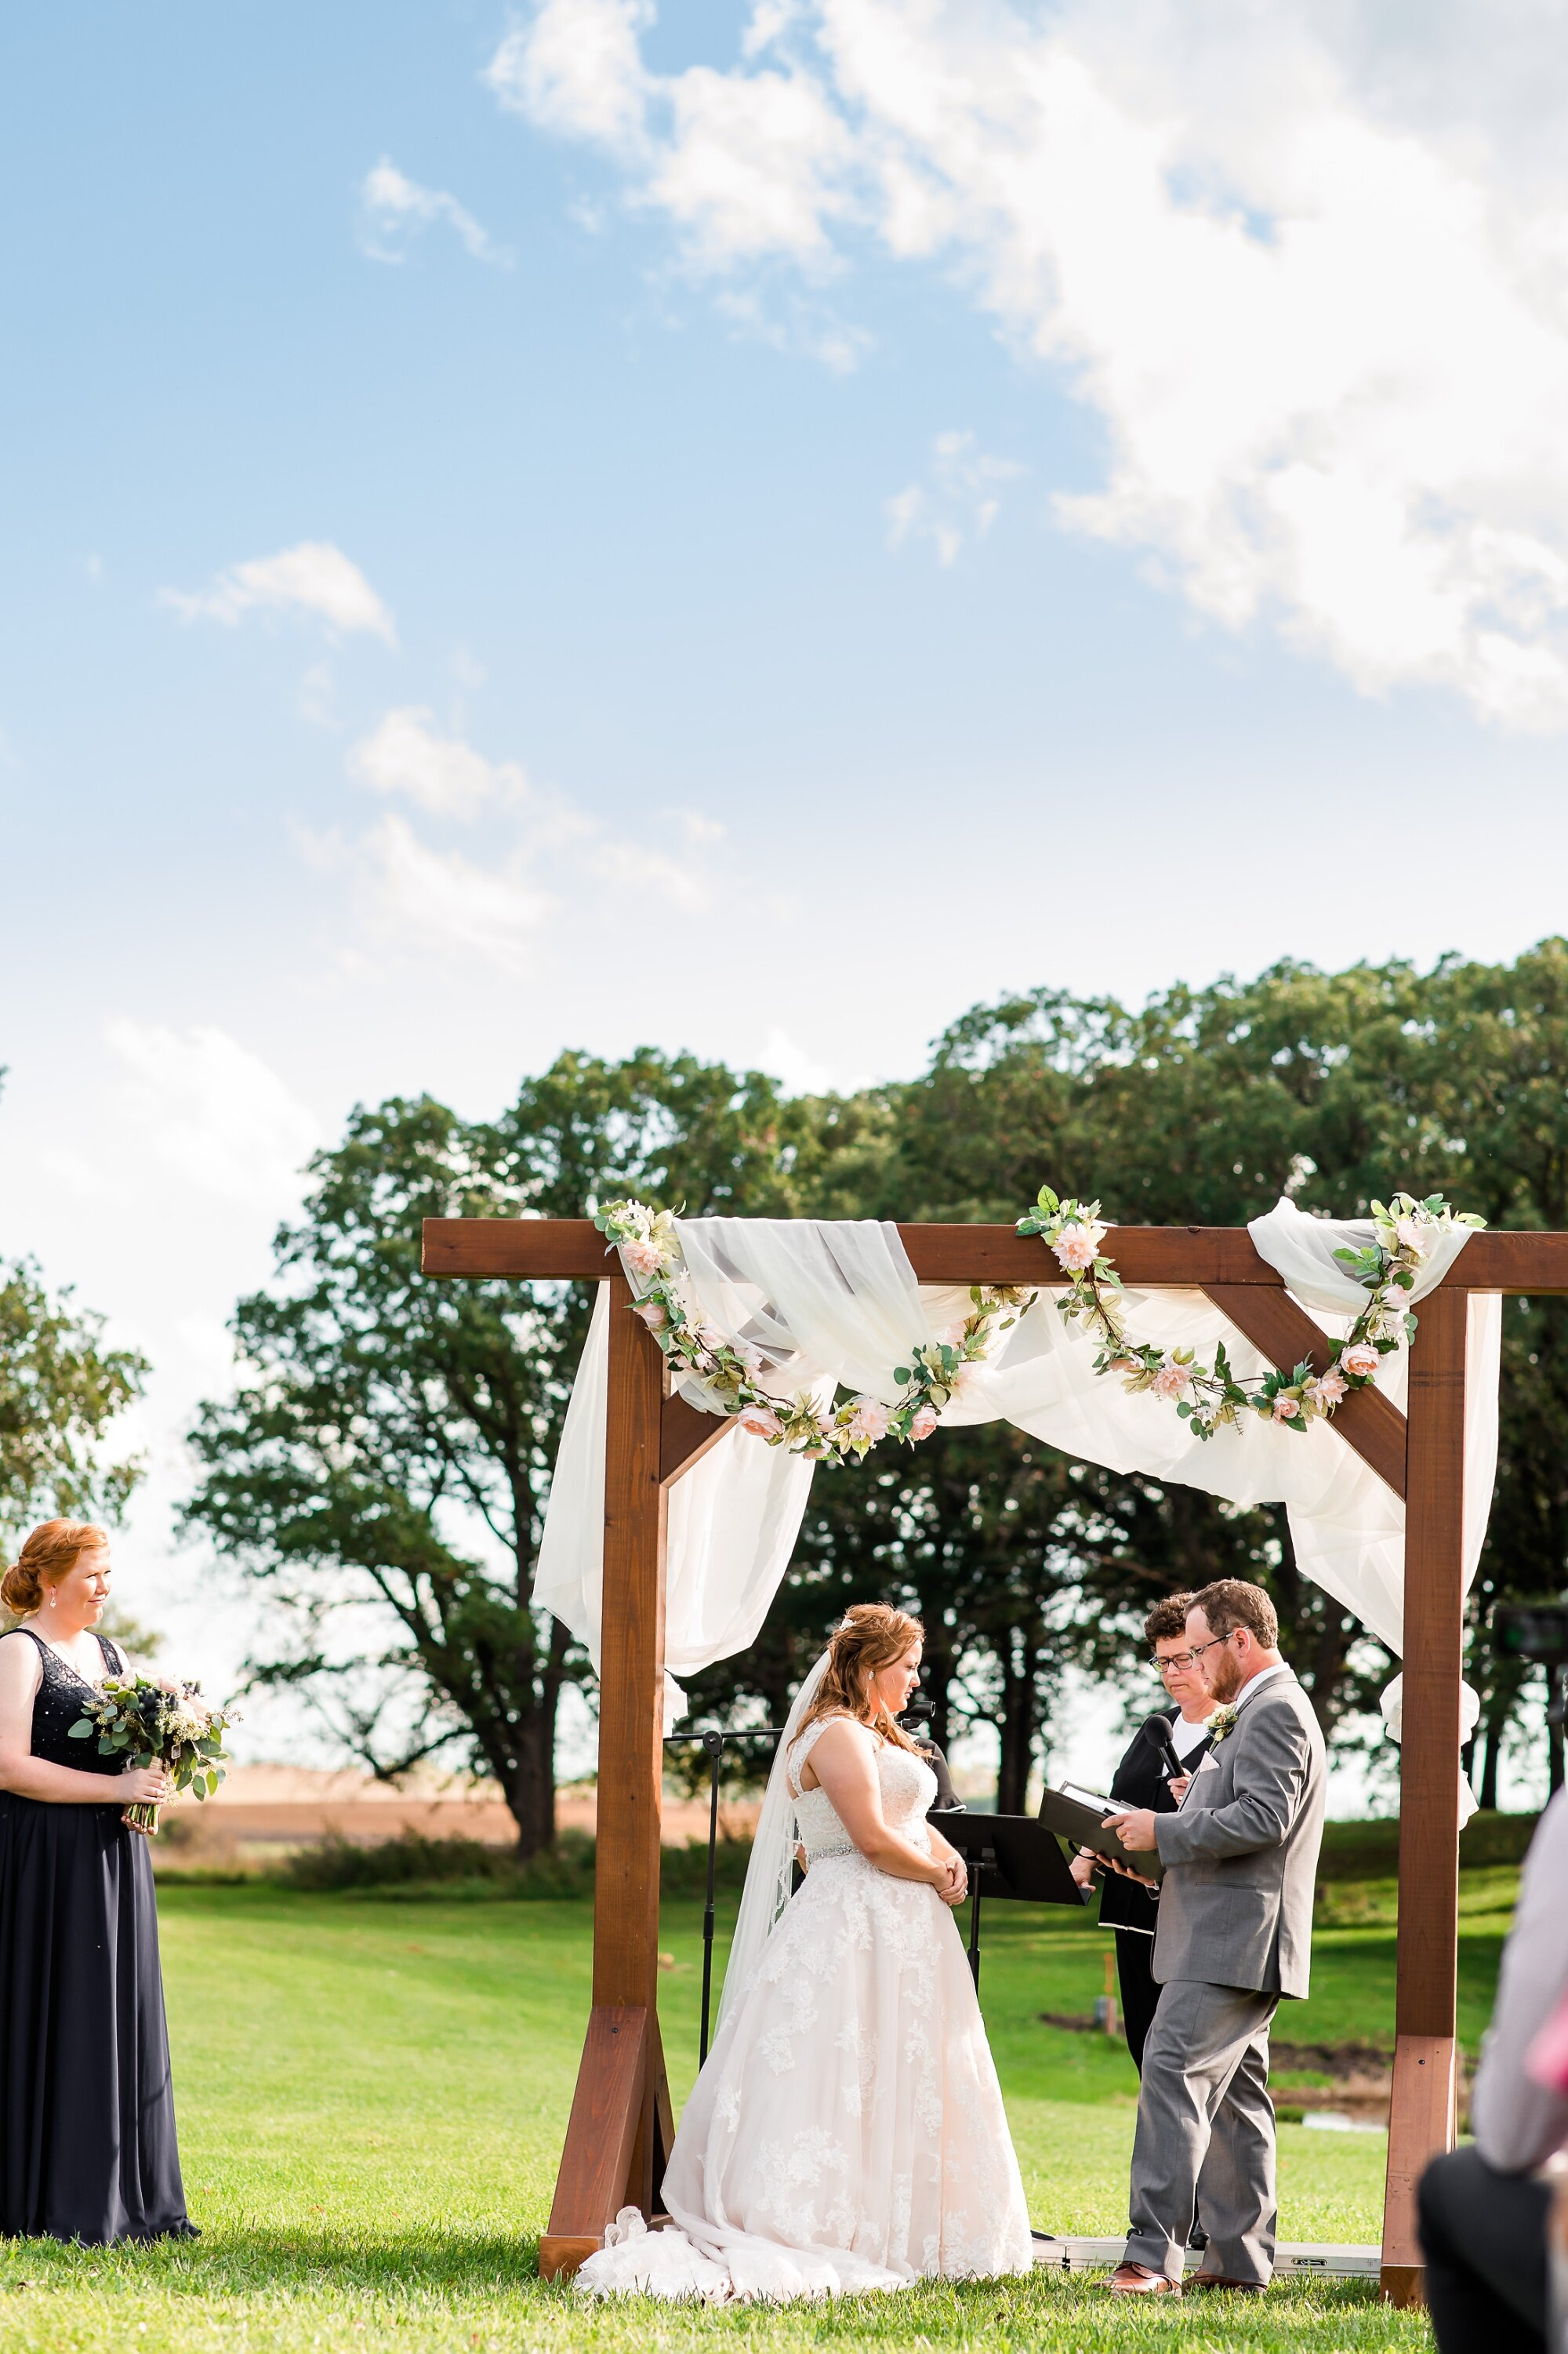 Amber Langerud Photography_Lake Park Minnesota, Outdoor Barn Wedding With Horses_6989.jpg